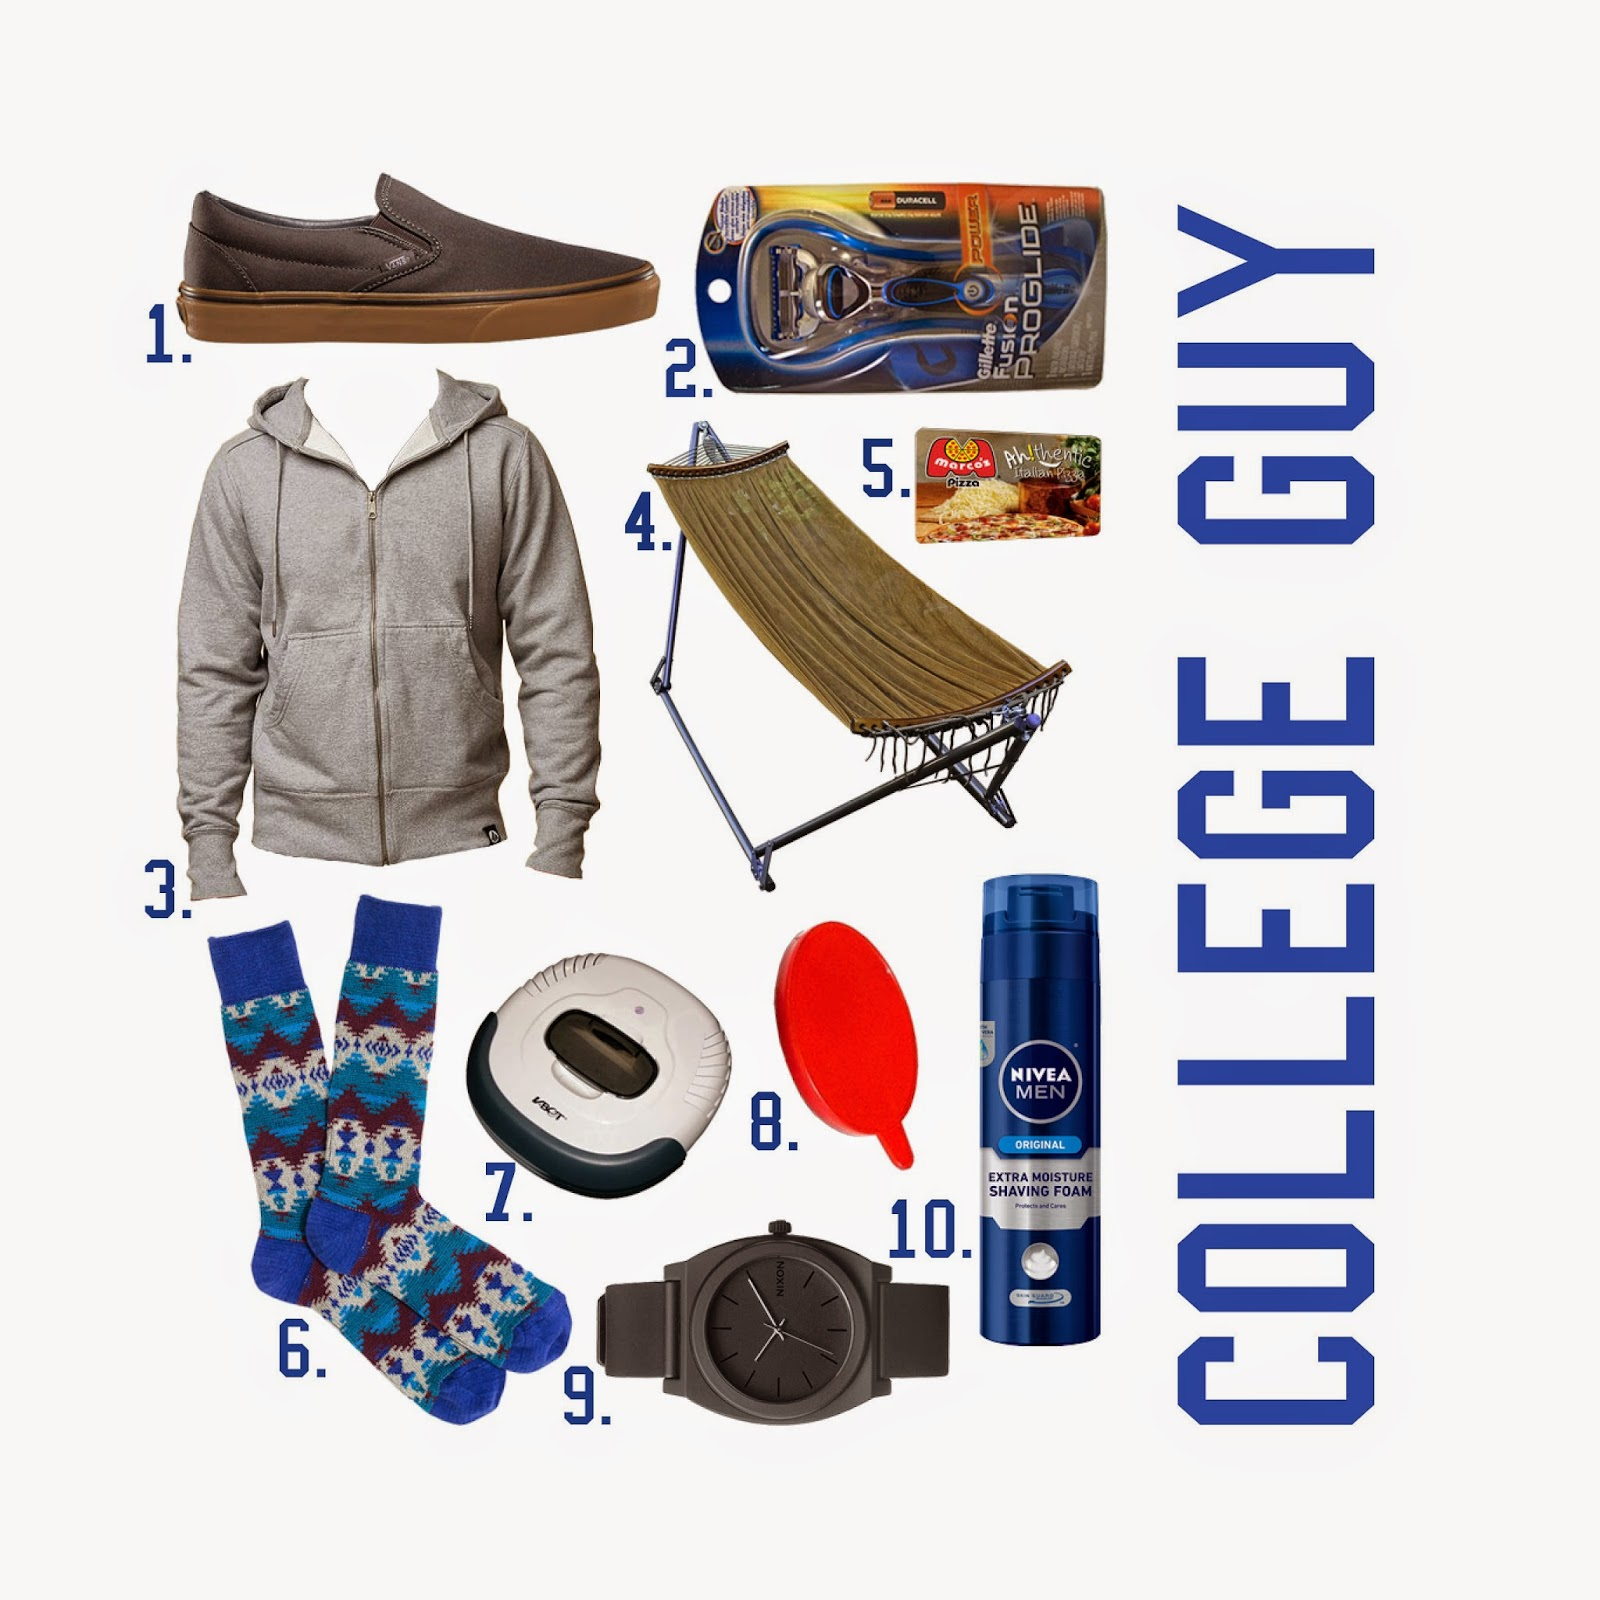 gift-guide-college-guy, gifts-for-college-guys, gift-ideas-for-college-guys, holiday-2014-gift-guide